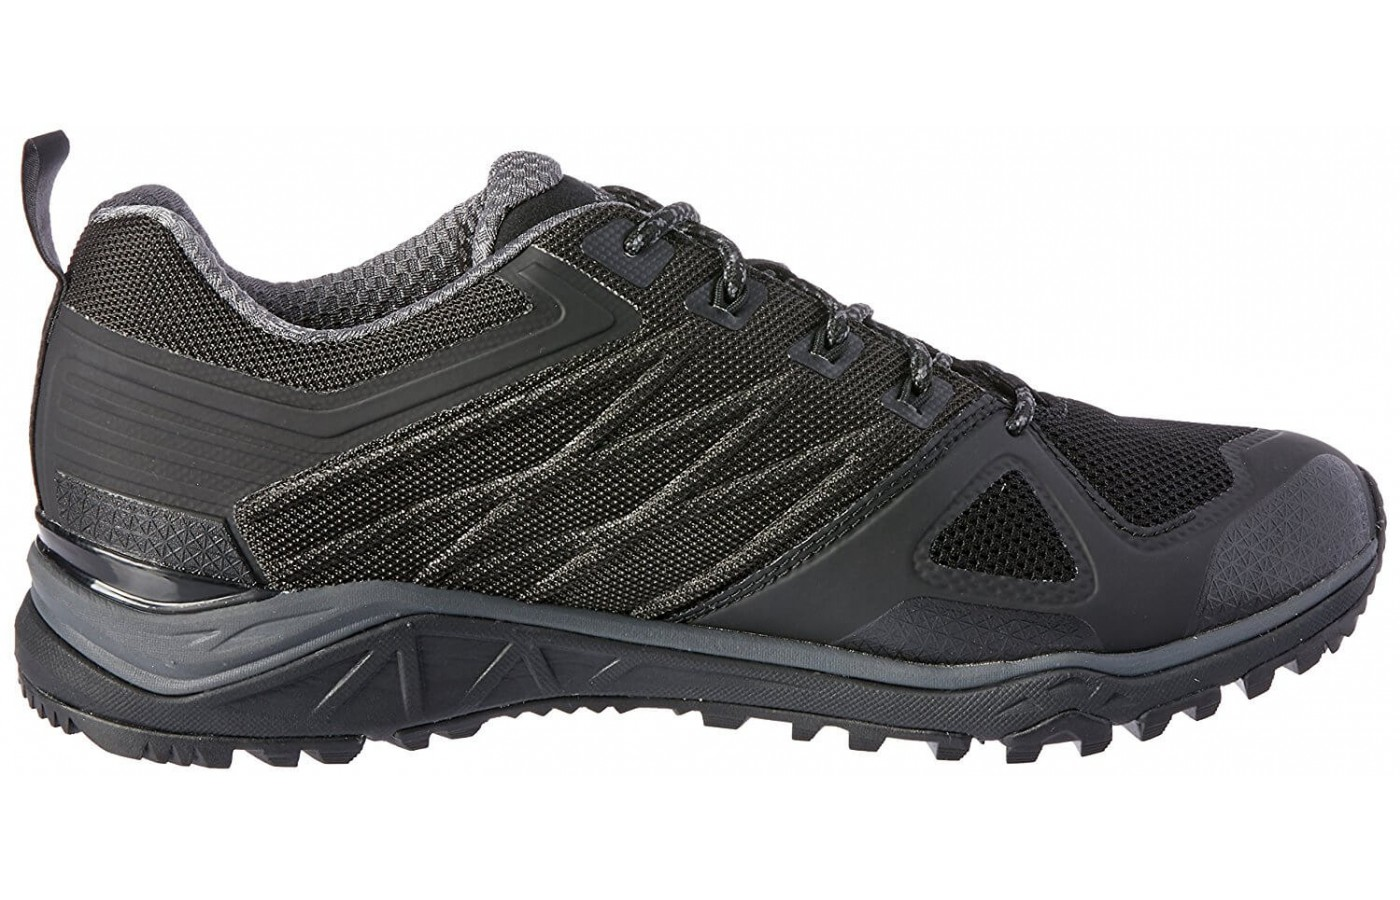 The The North Face Ultra Fastpack II GTX has an ESS Snake plate in its forefoot